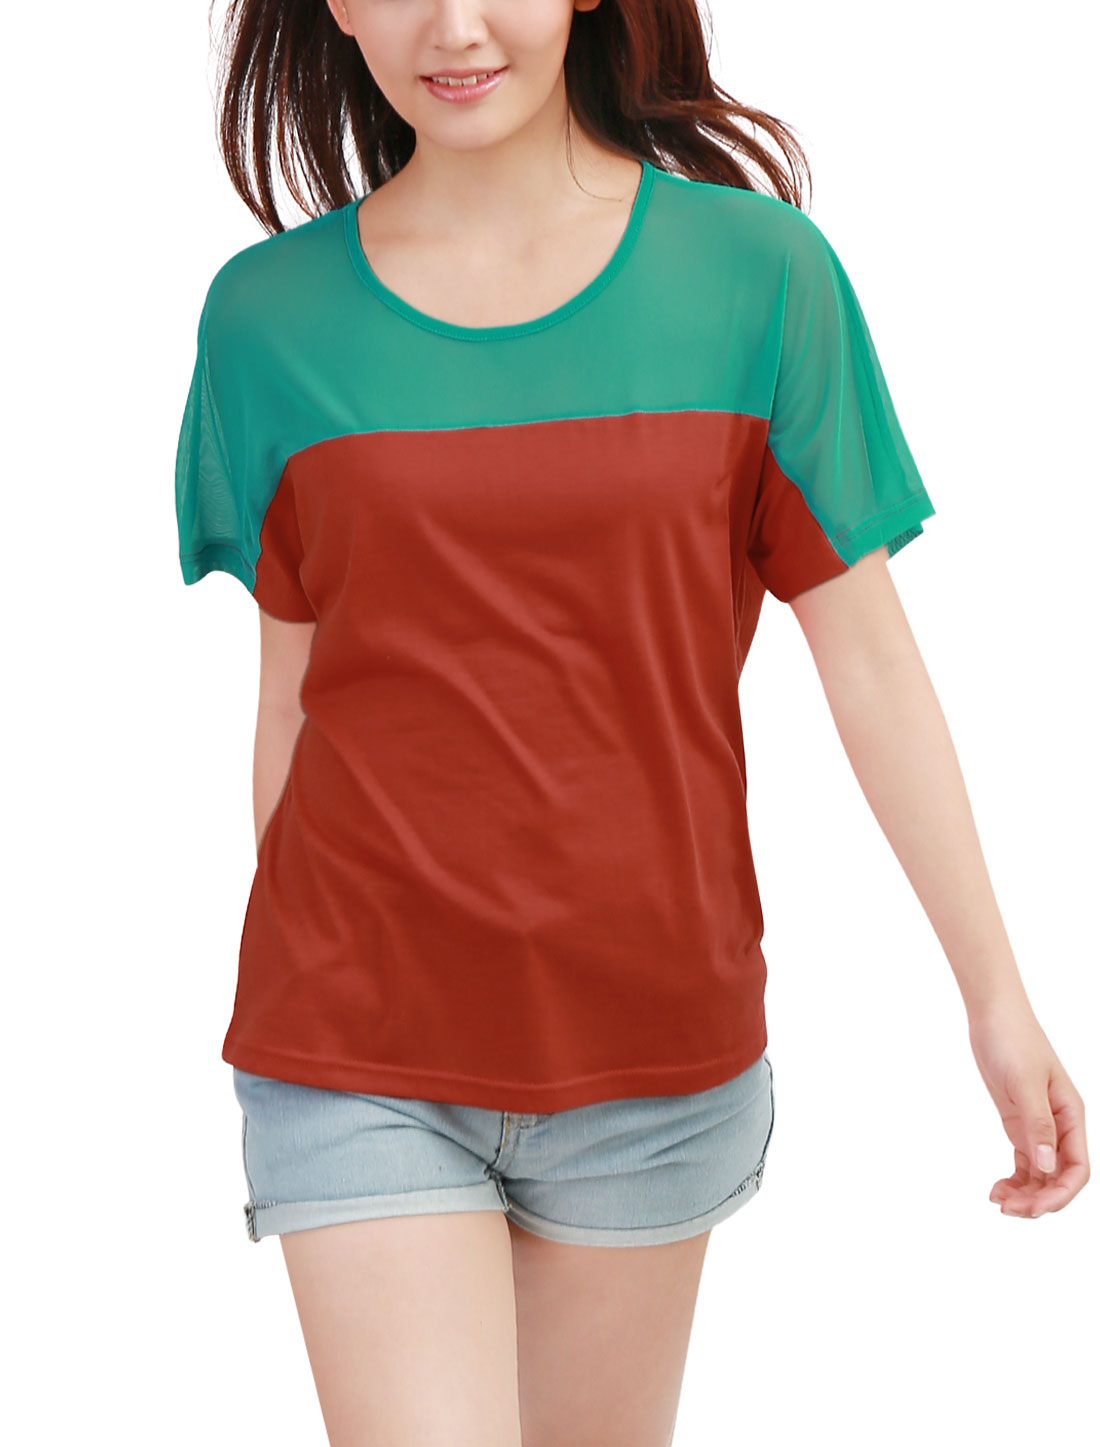 Stylish Dark Orange Green Color Blocking Loose Casual Shirt for Lady L